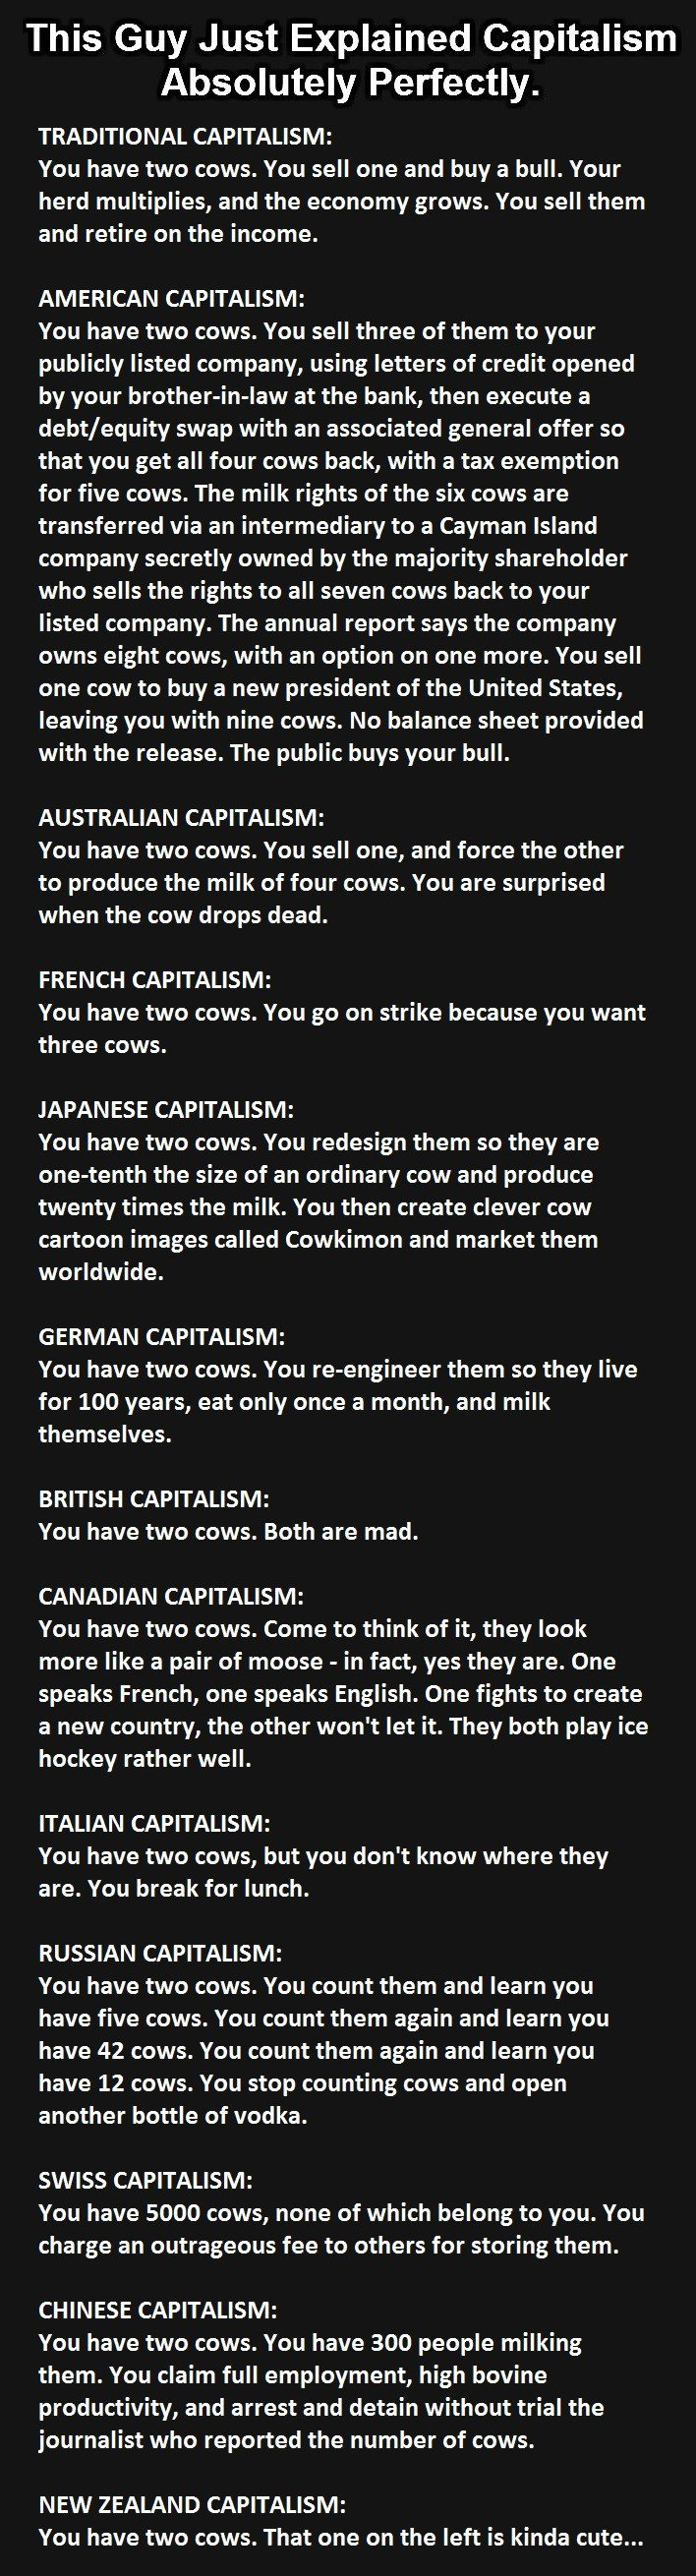 Capitalism Explained with Cows